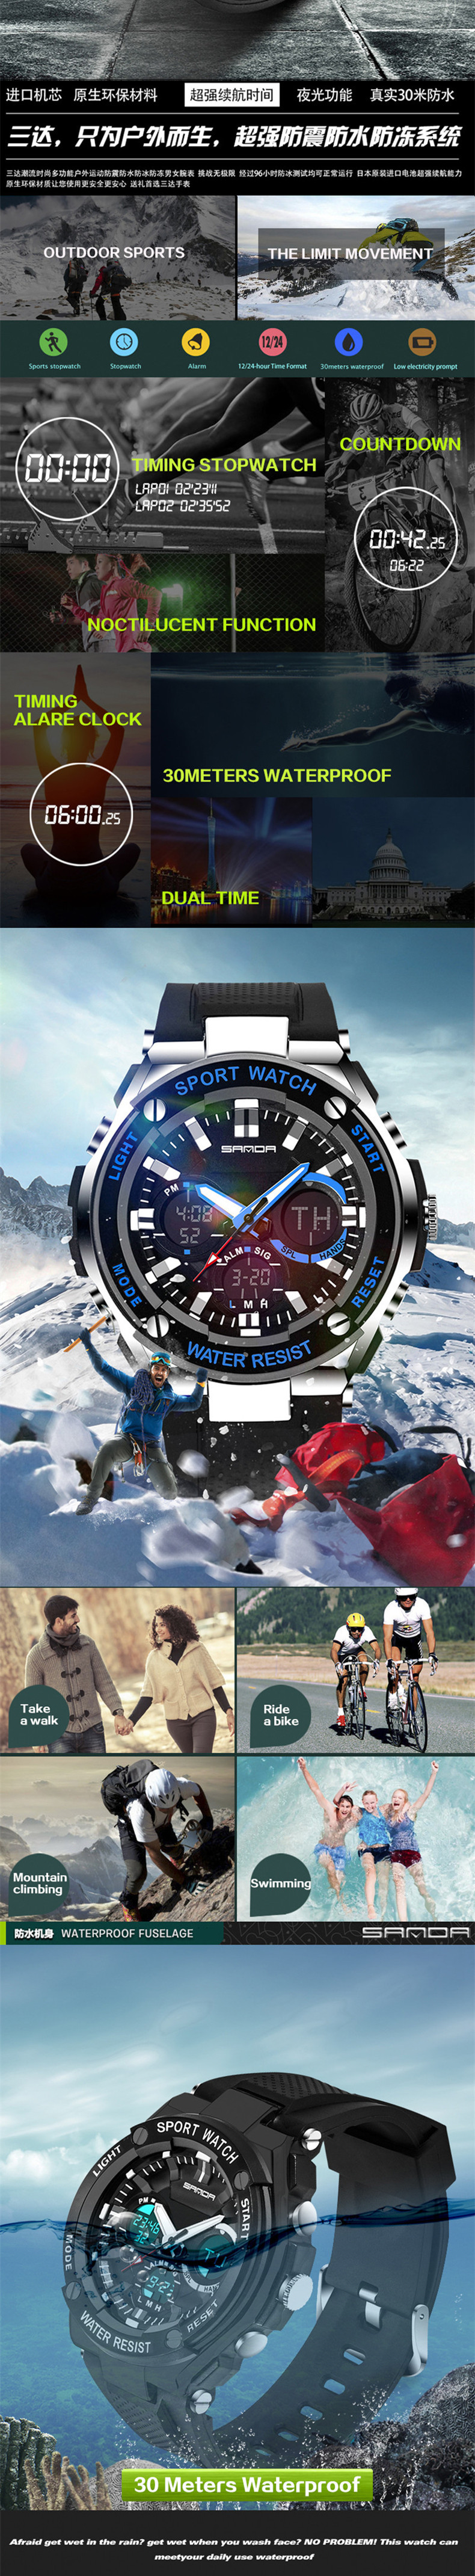 2016 New SANDA Luxury Brand Men Military Sports Watches Waterproof LED Date Silicone Digital Watch For Men G style digital-watch